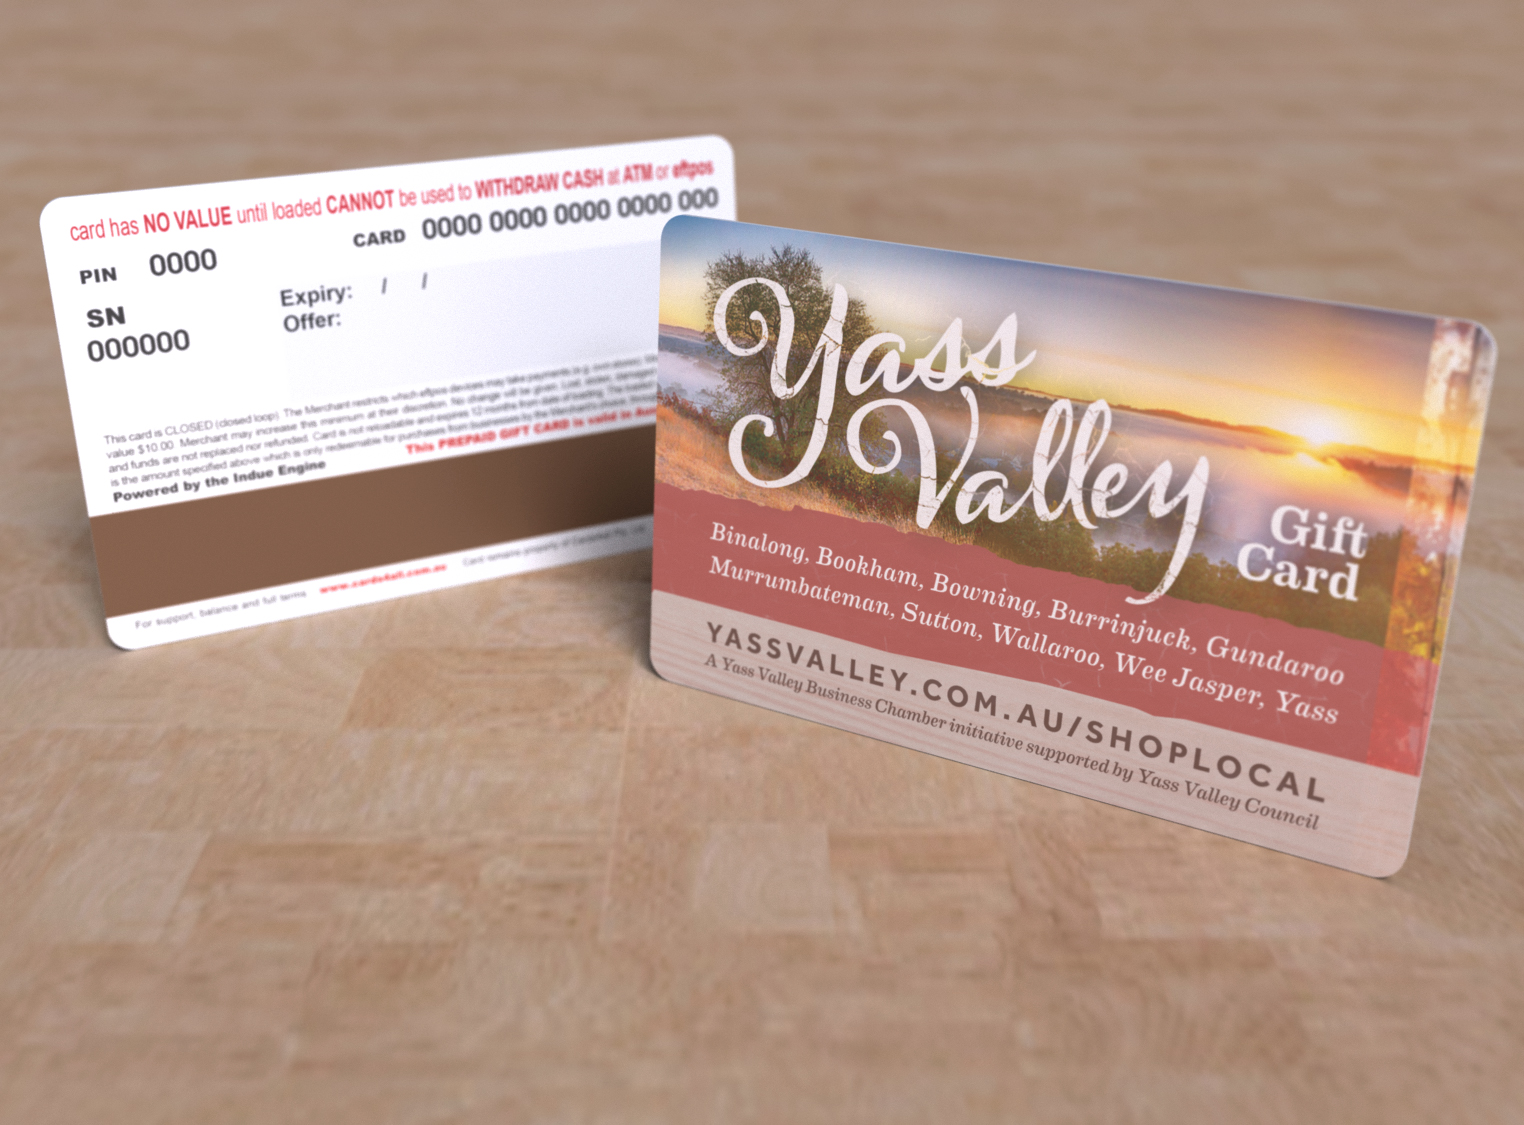 Gift cards express card yass valley business chamber gift card colourmoves